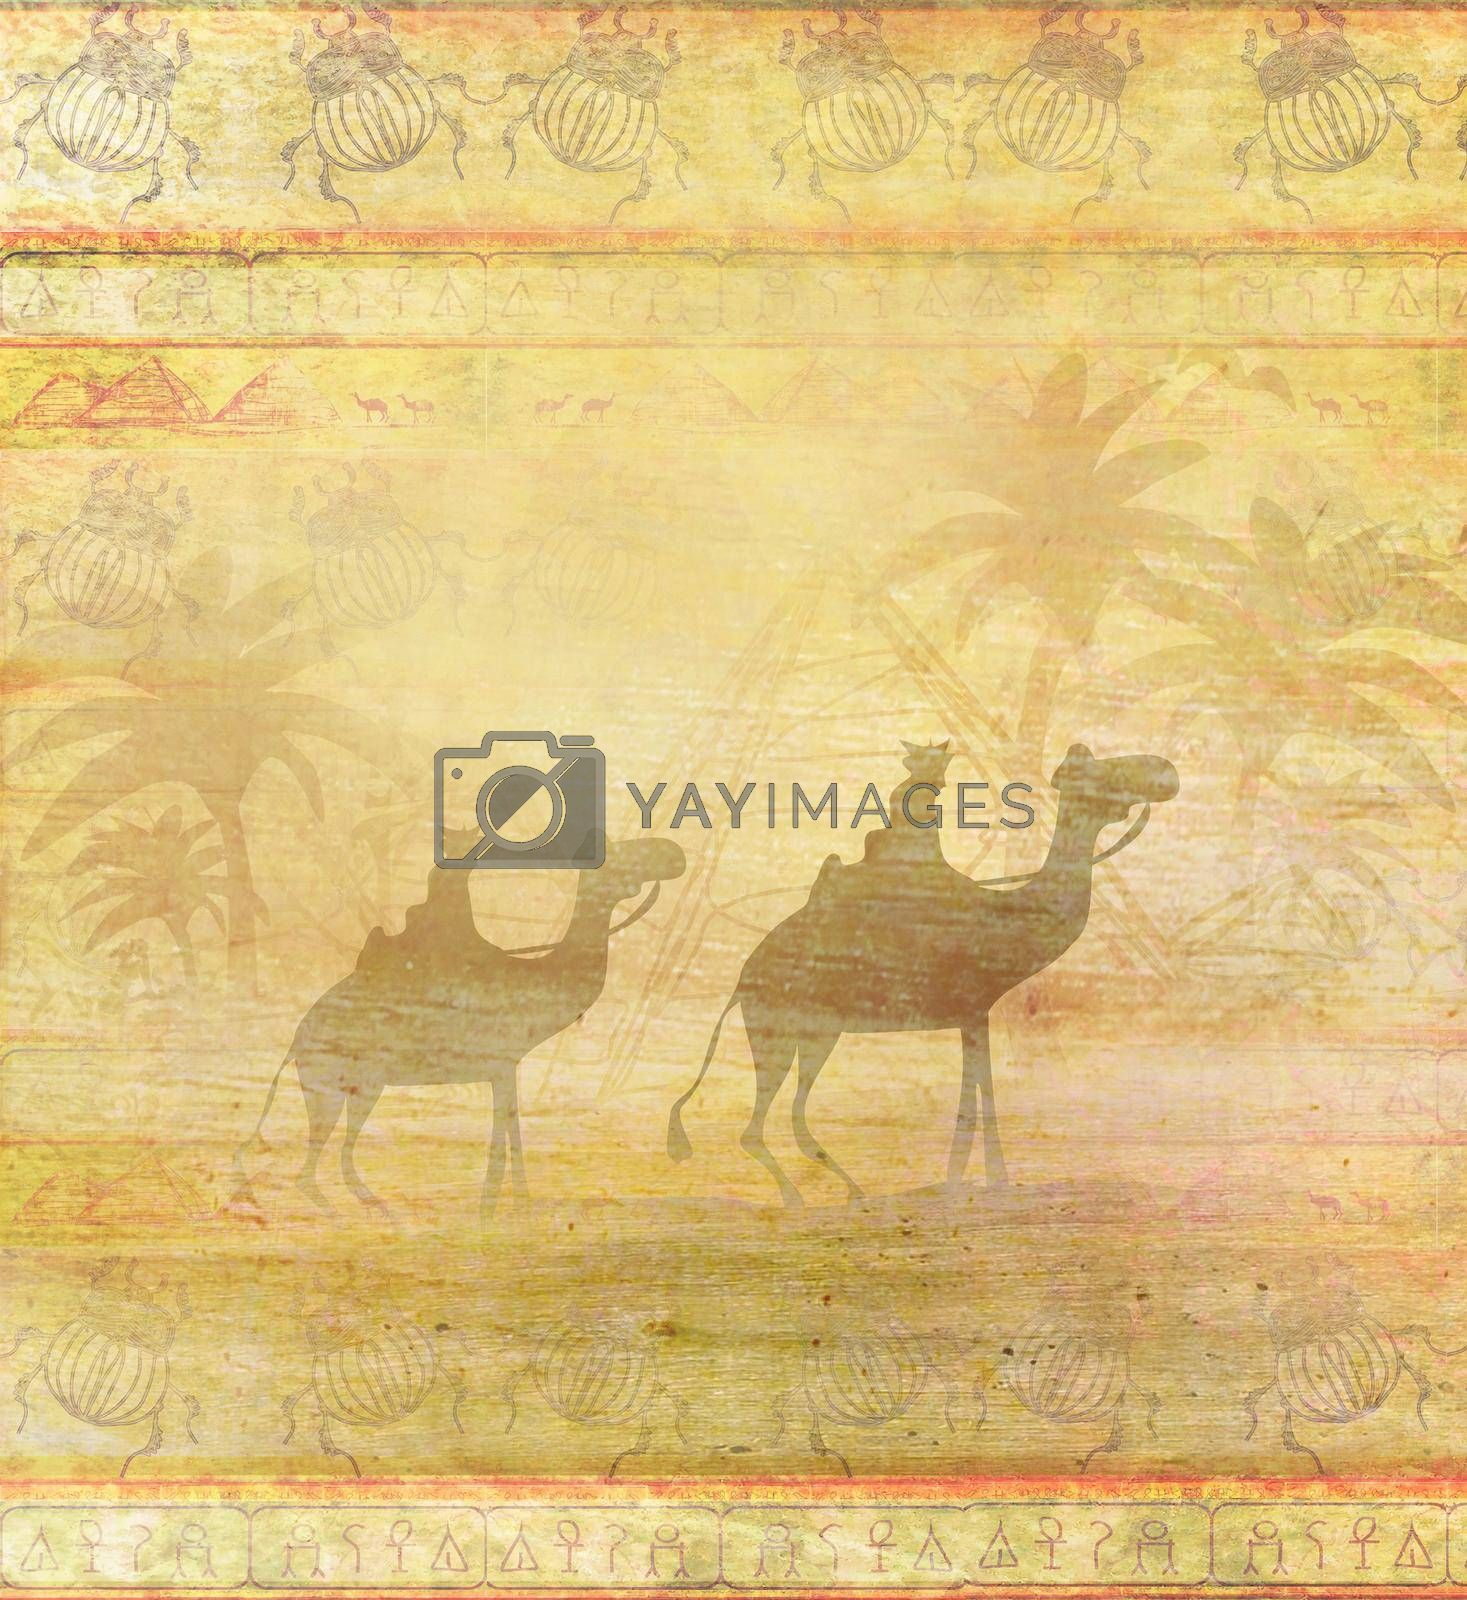 Royalty free image of Camel train silhouetted against sky crossing the Sahara Desert - abstract grunge card  by JackyBrown